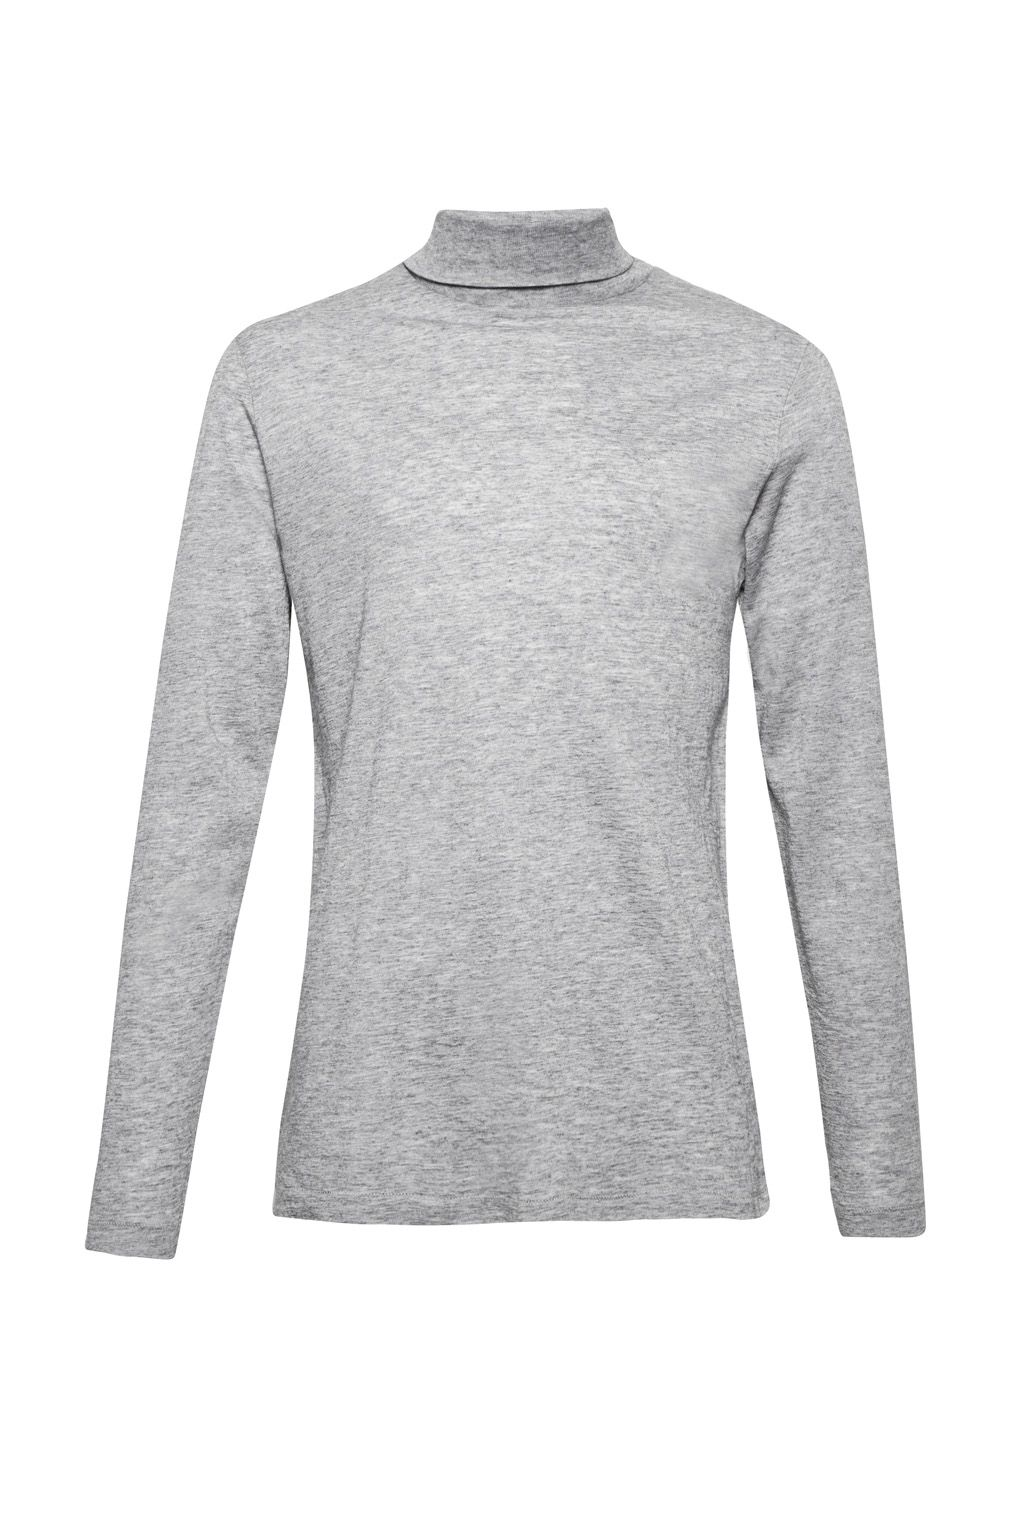 French Connection Wool Jersey Roll Neck £22